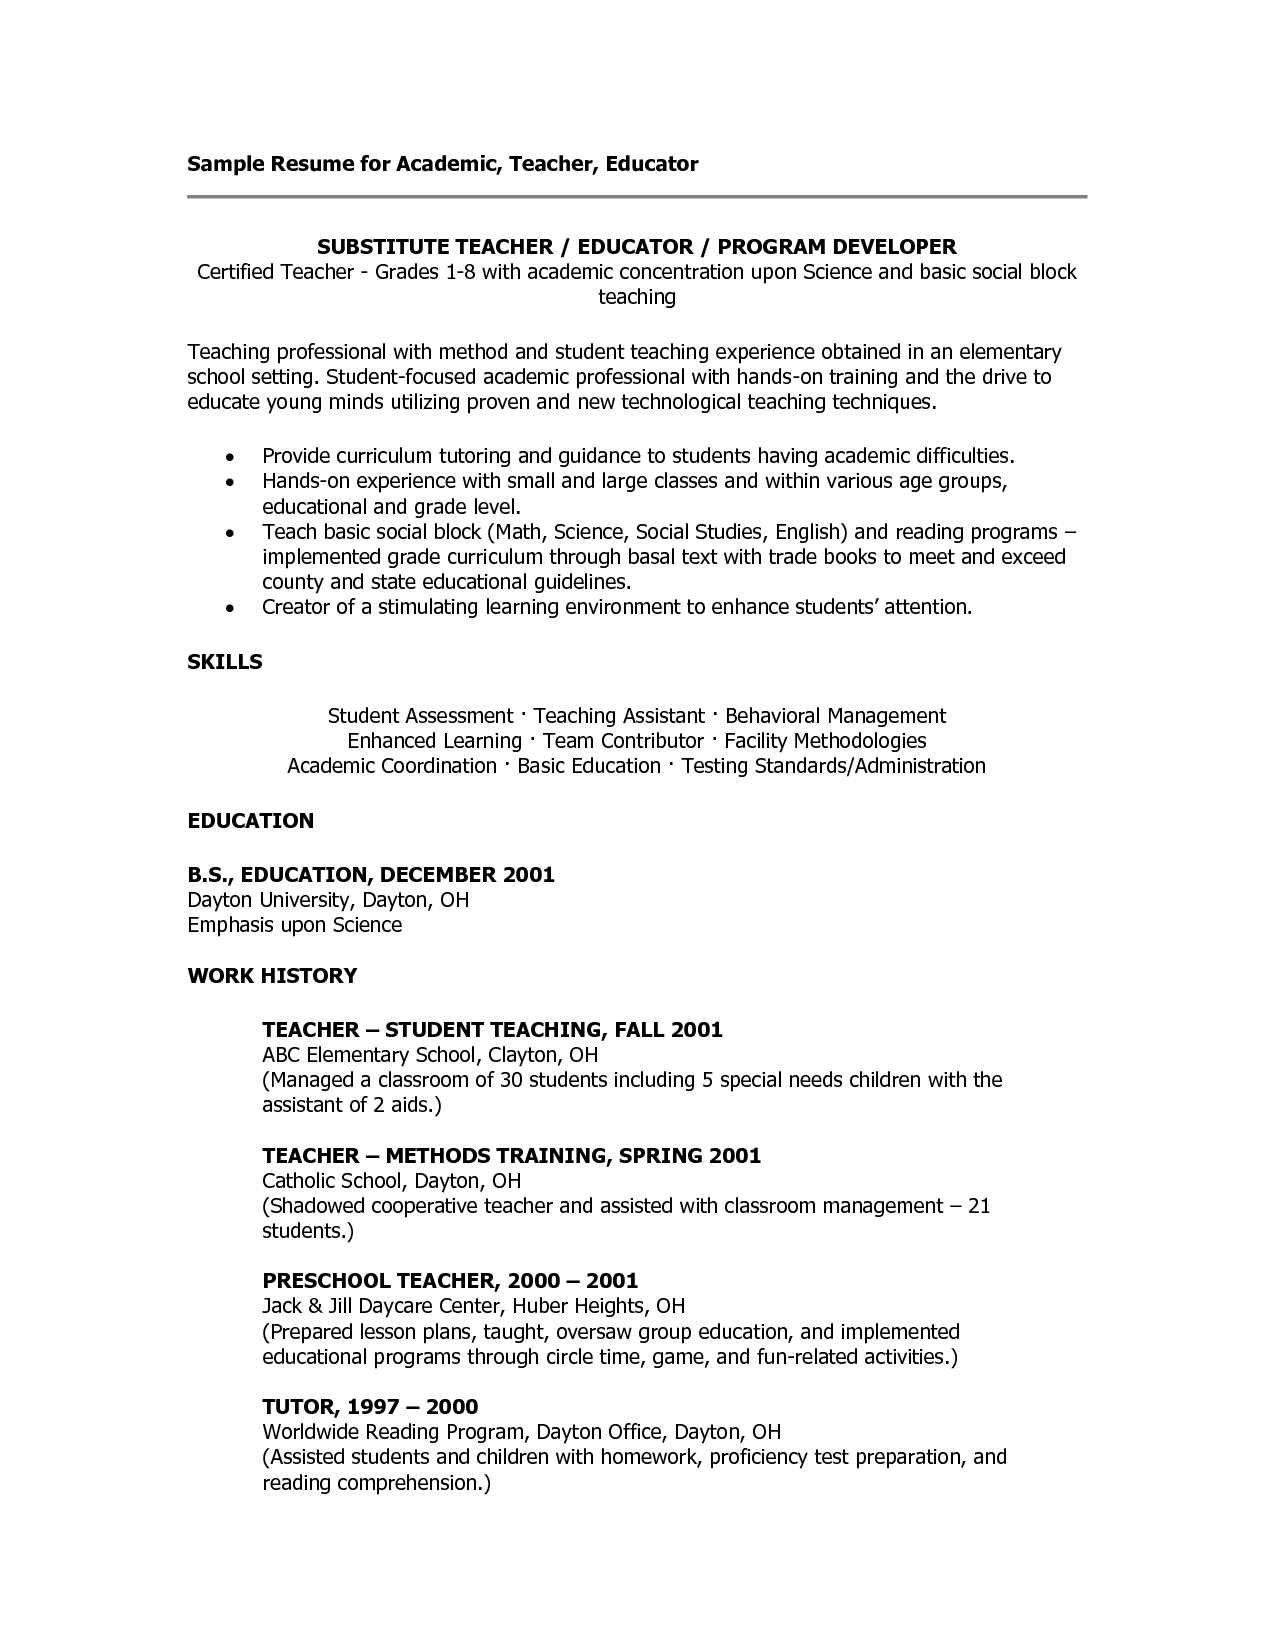 Examples Of Teacher Resumes Sample Teacher Resumes  Substitute Teacher Resume  Fcs